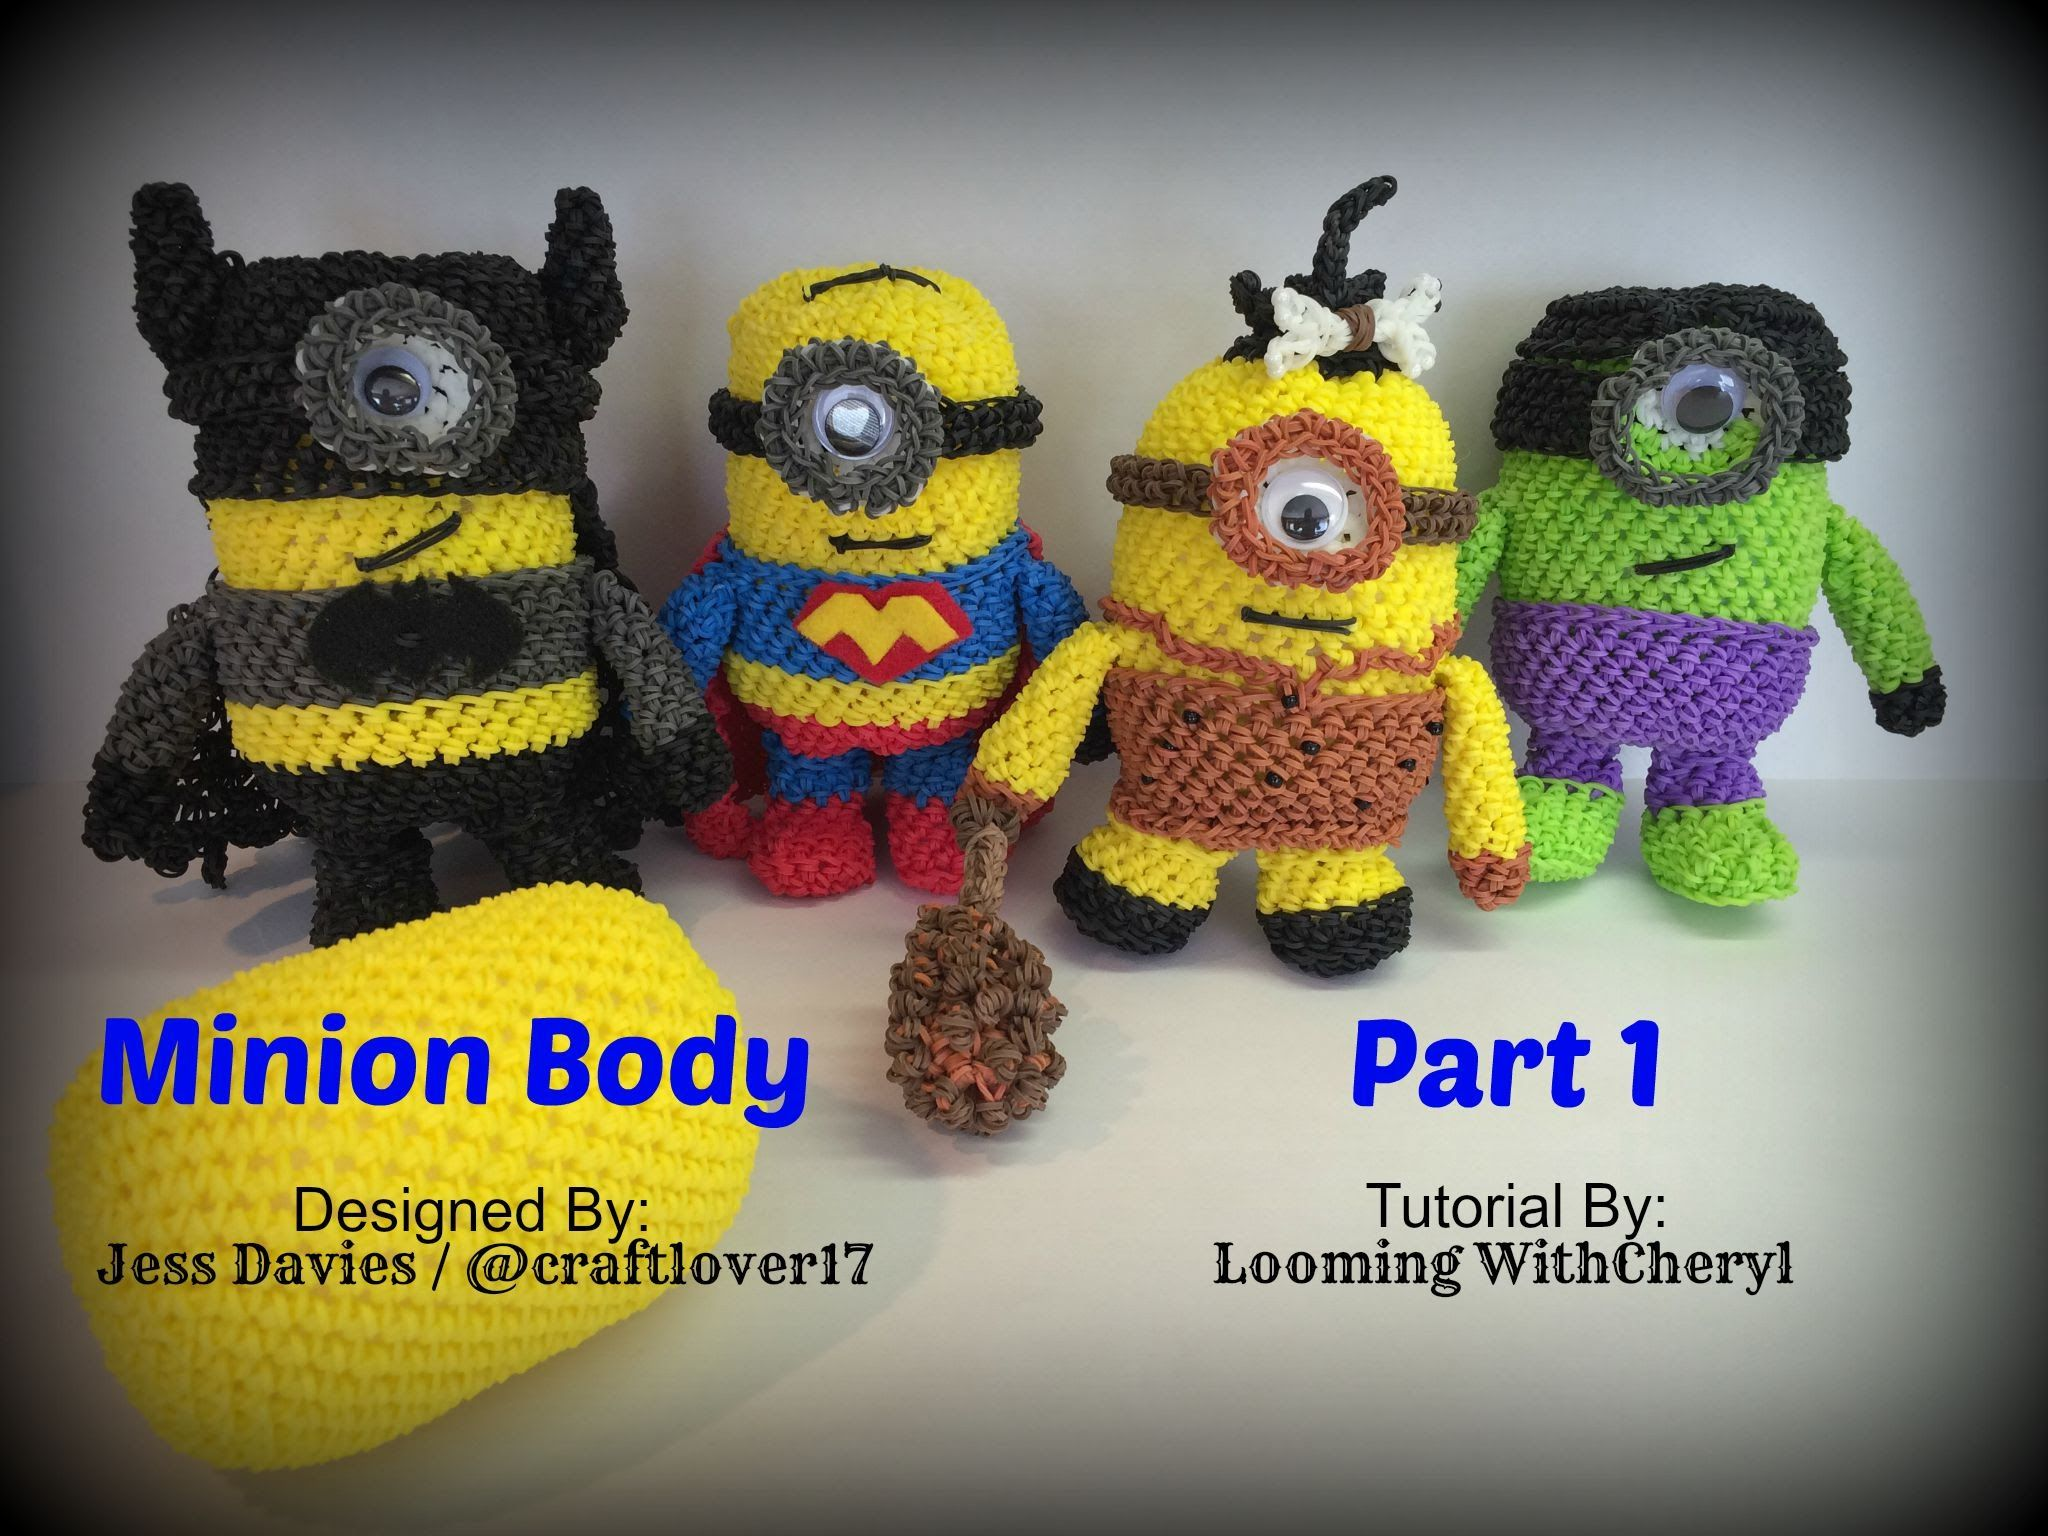 Amigurumi Loom Patterns : Rainbow loom minion body part 1 loomigurumi looming withcheryl